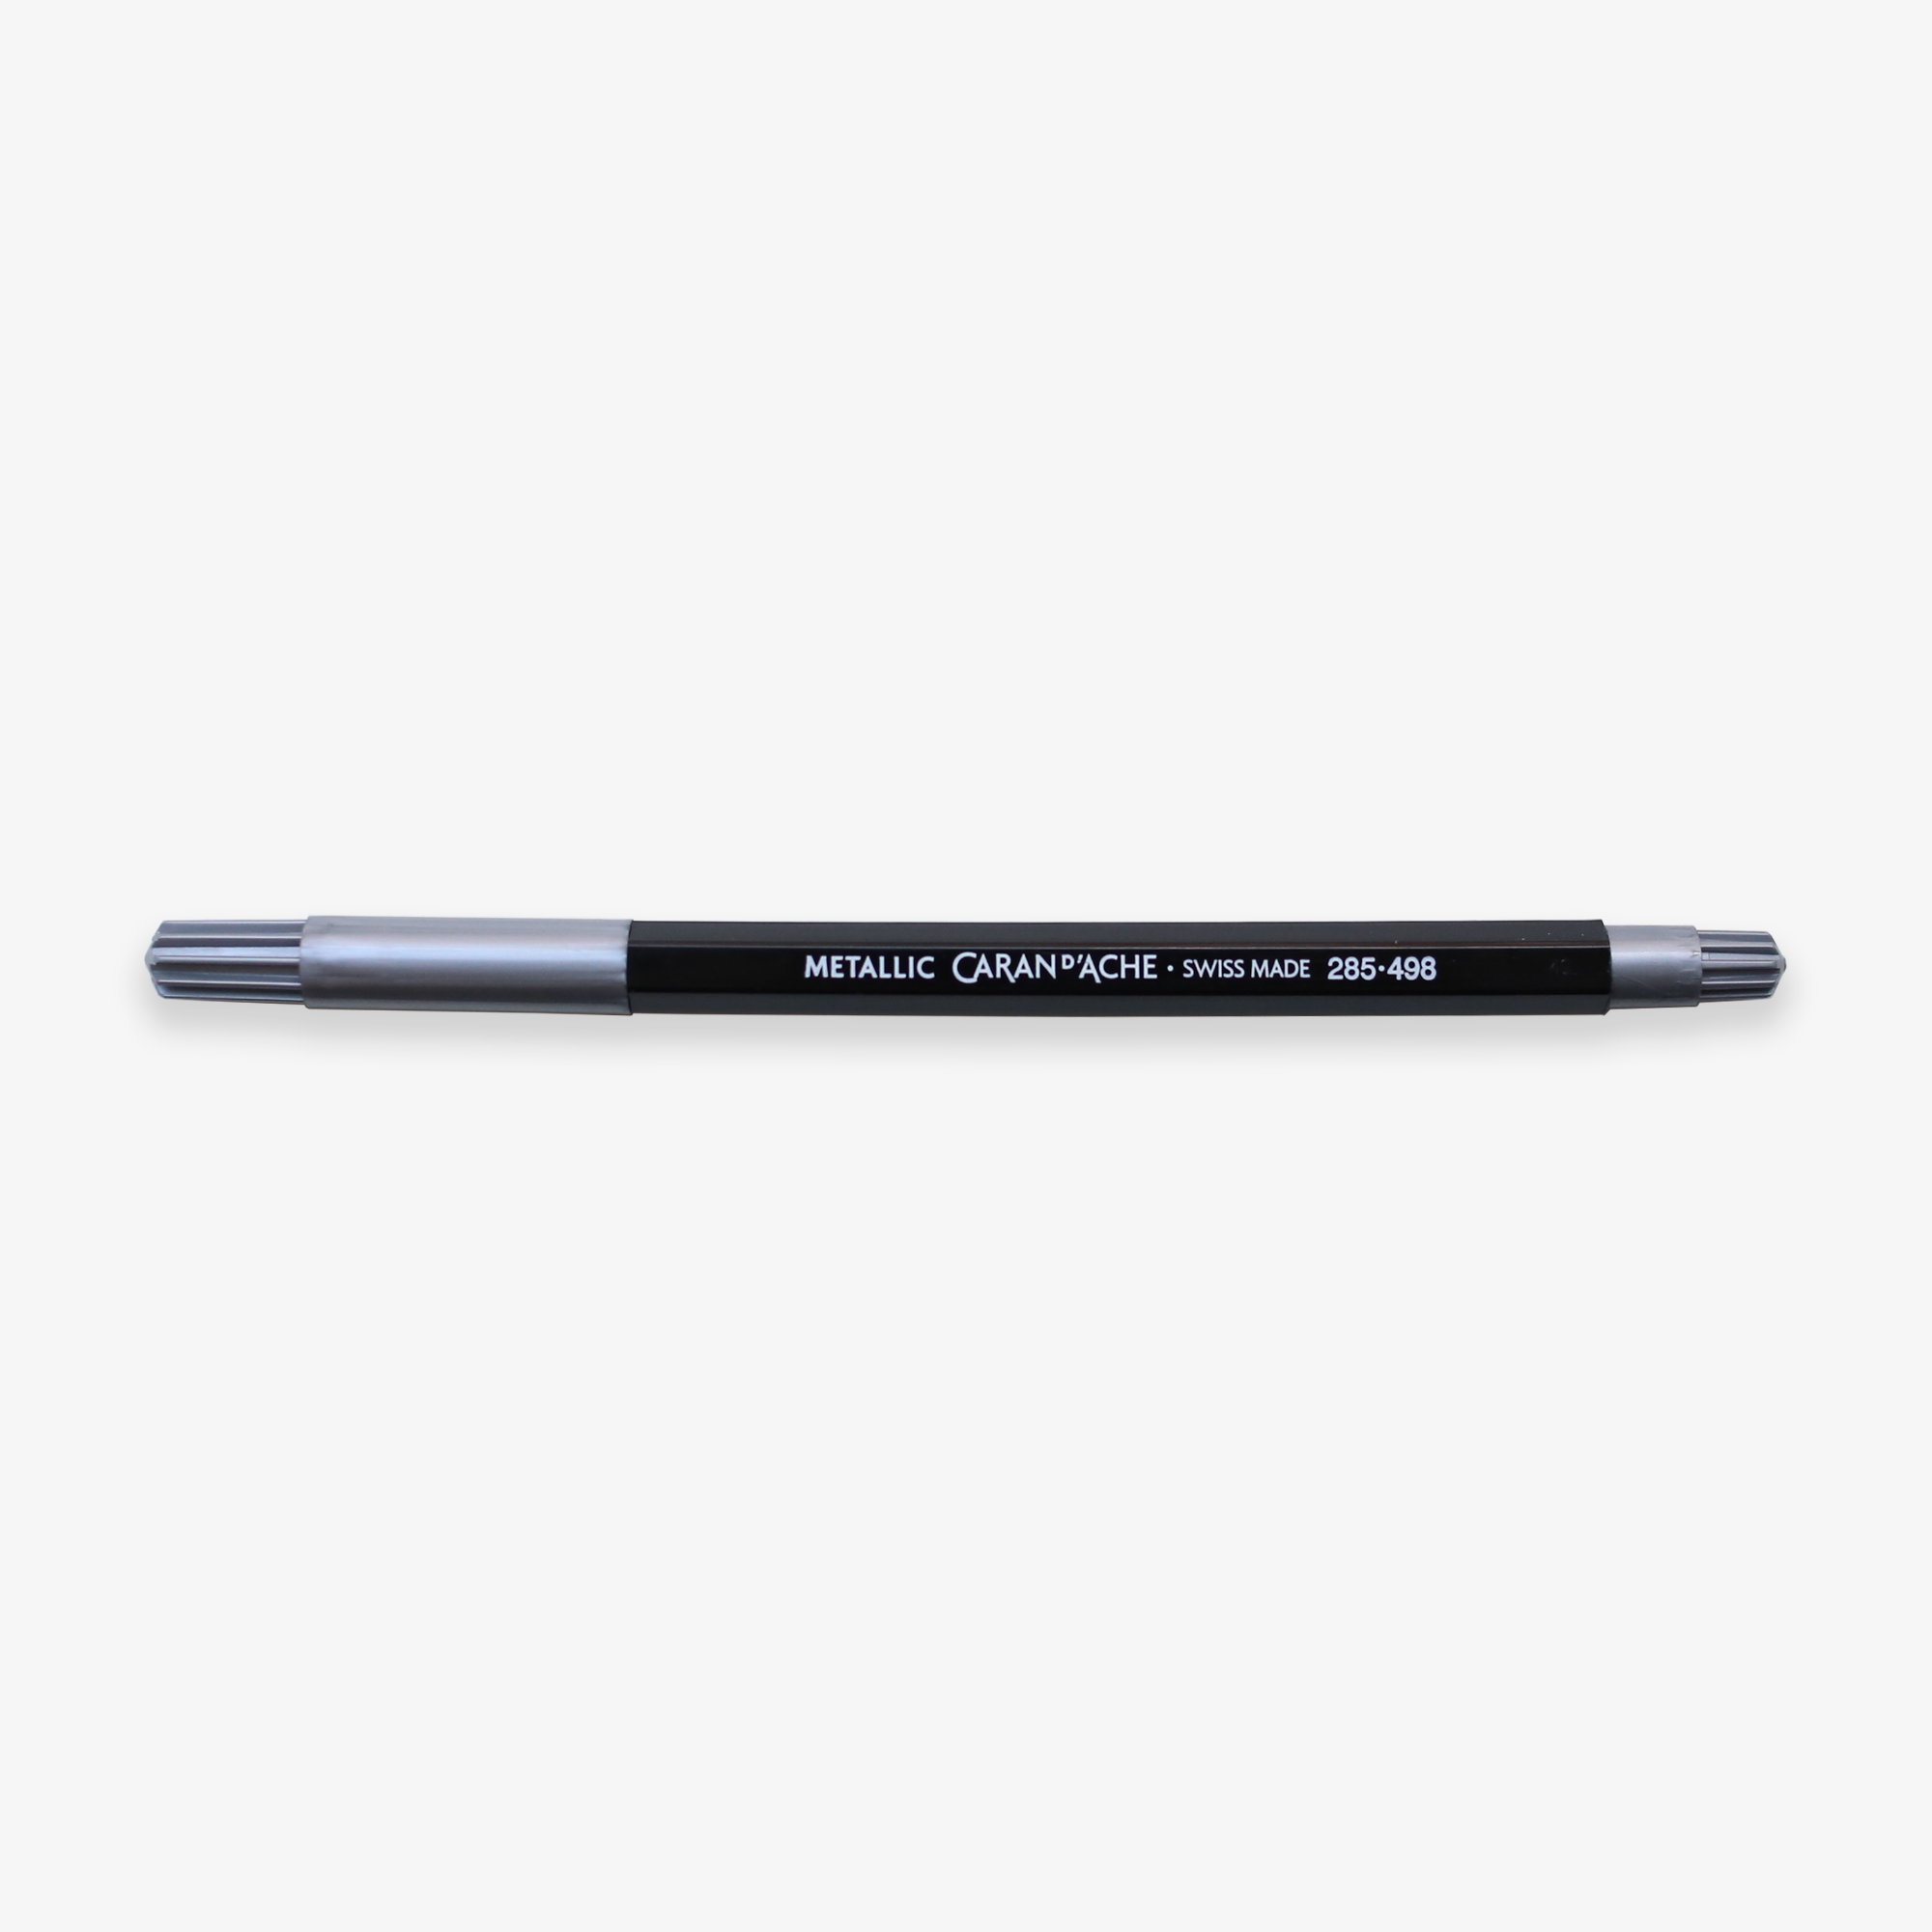 FIBRALO BRUSH MARKER PEN METALLIC // SILVER